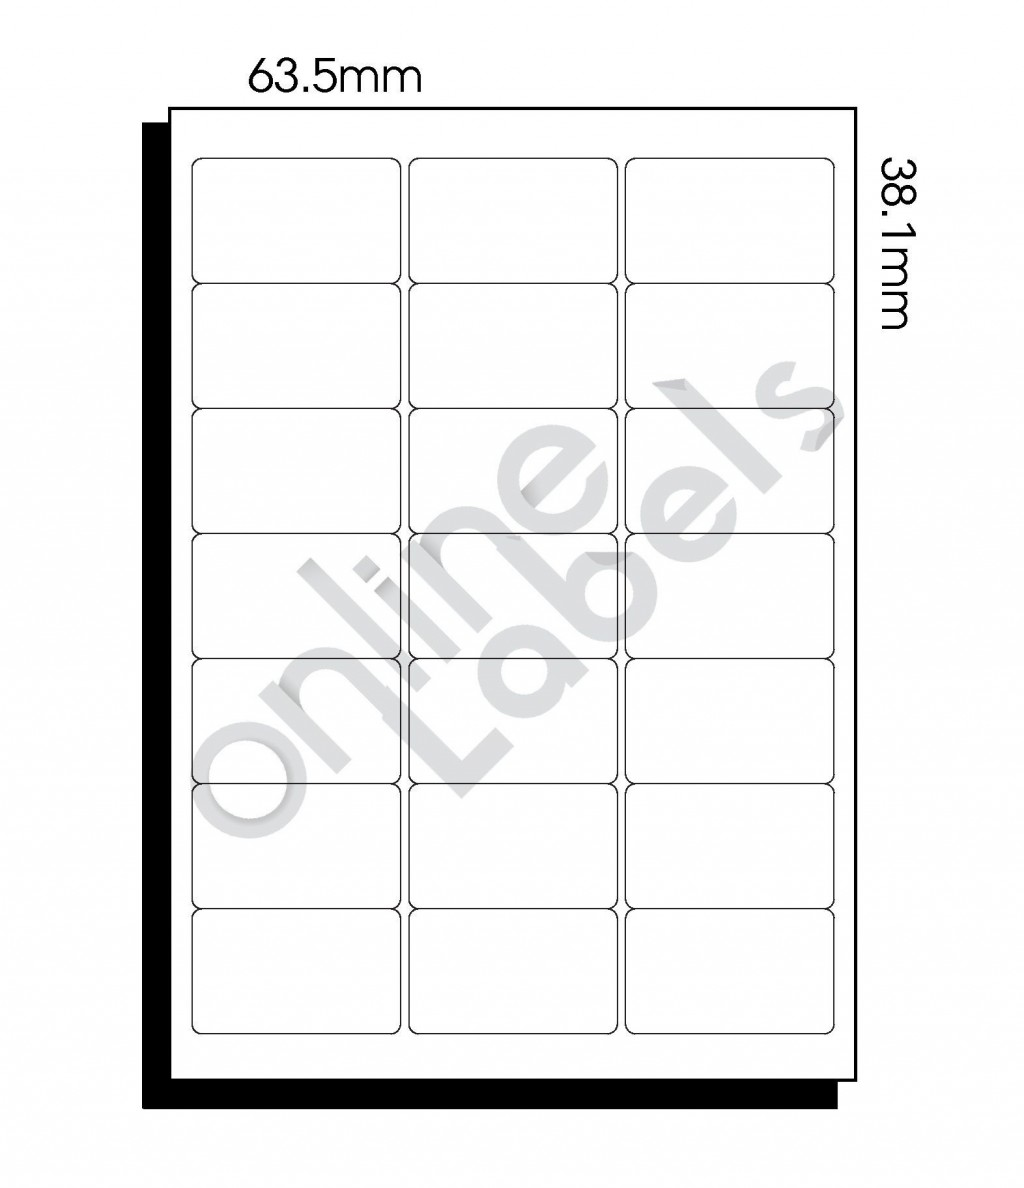 009 Beautiful Microsoft Word Addres Label Template 16 Per Sheet High Definition Large